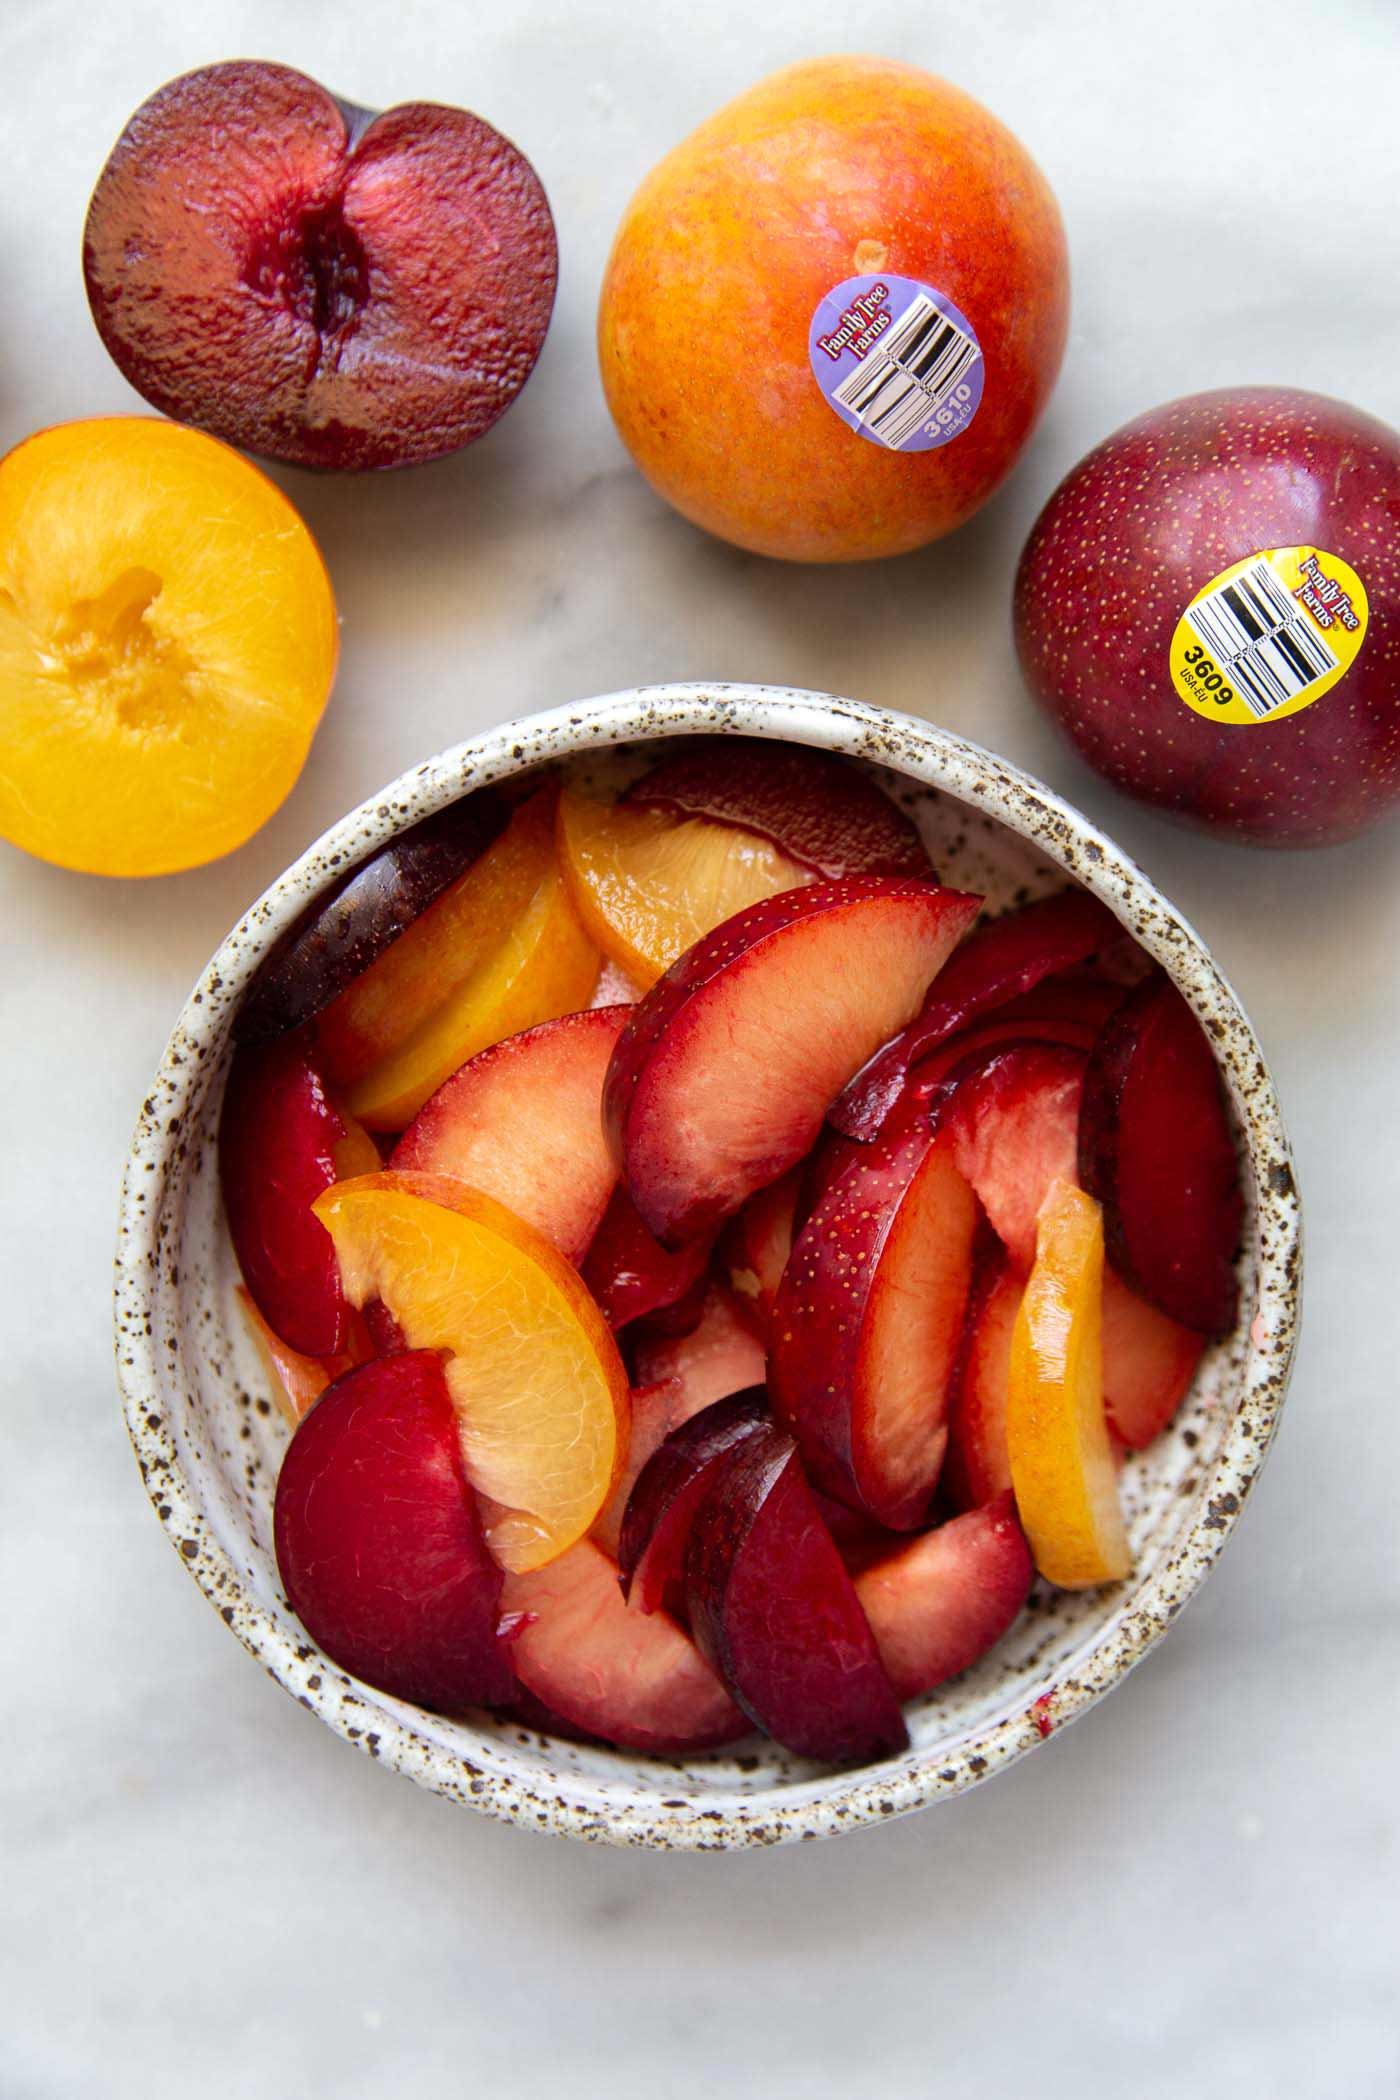 Plumcots and apriums combine the best of plums and apricots to make the most delicious summer fruit